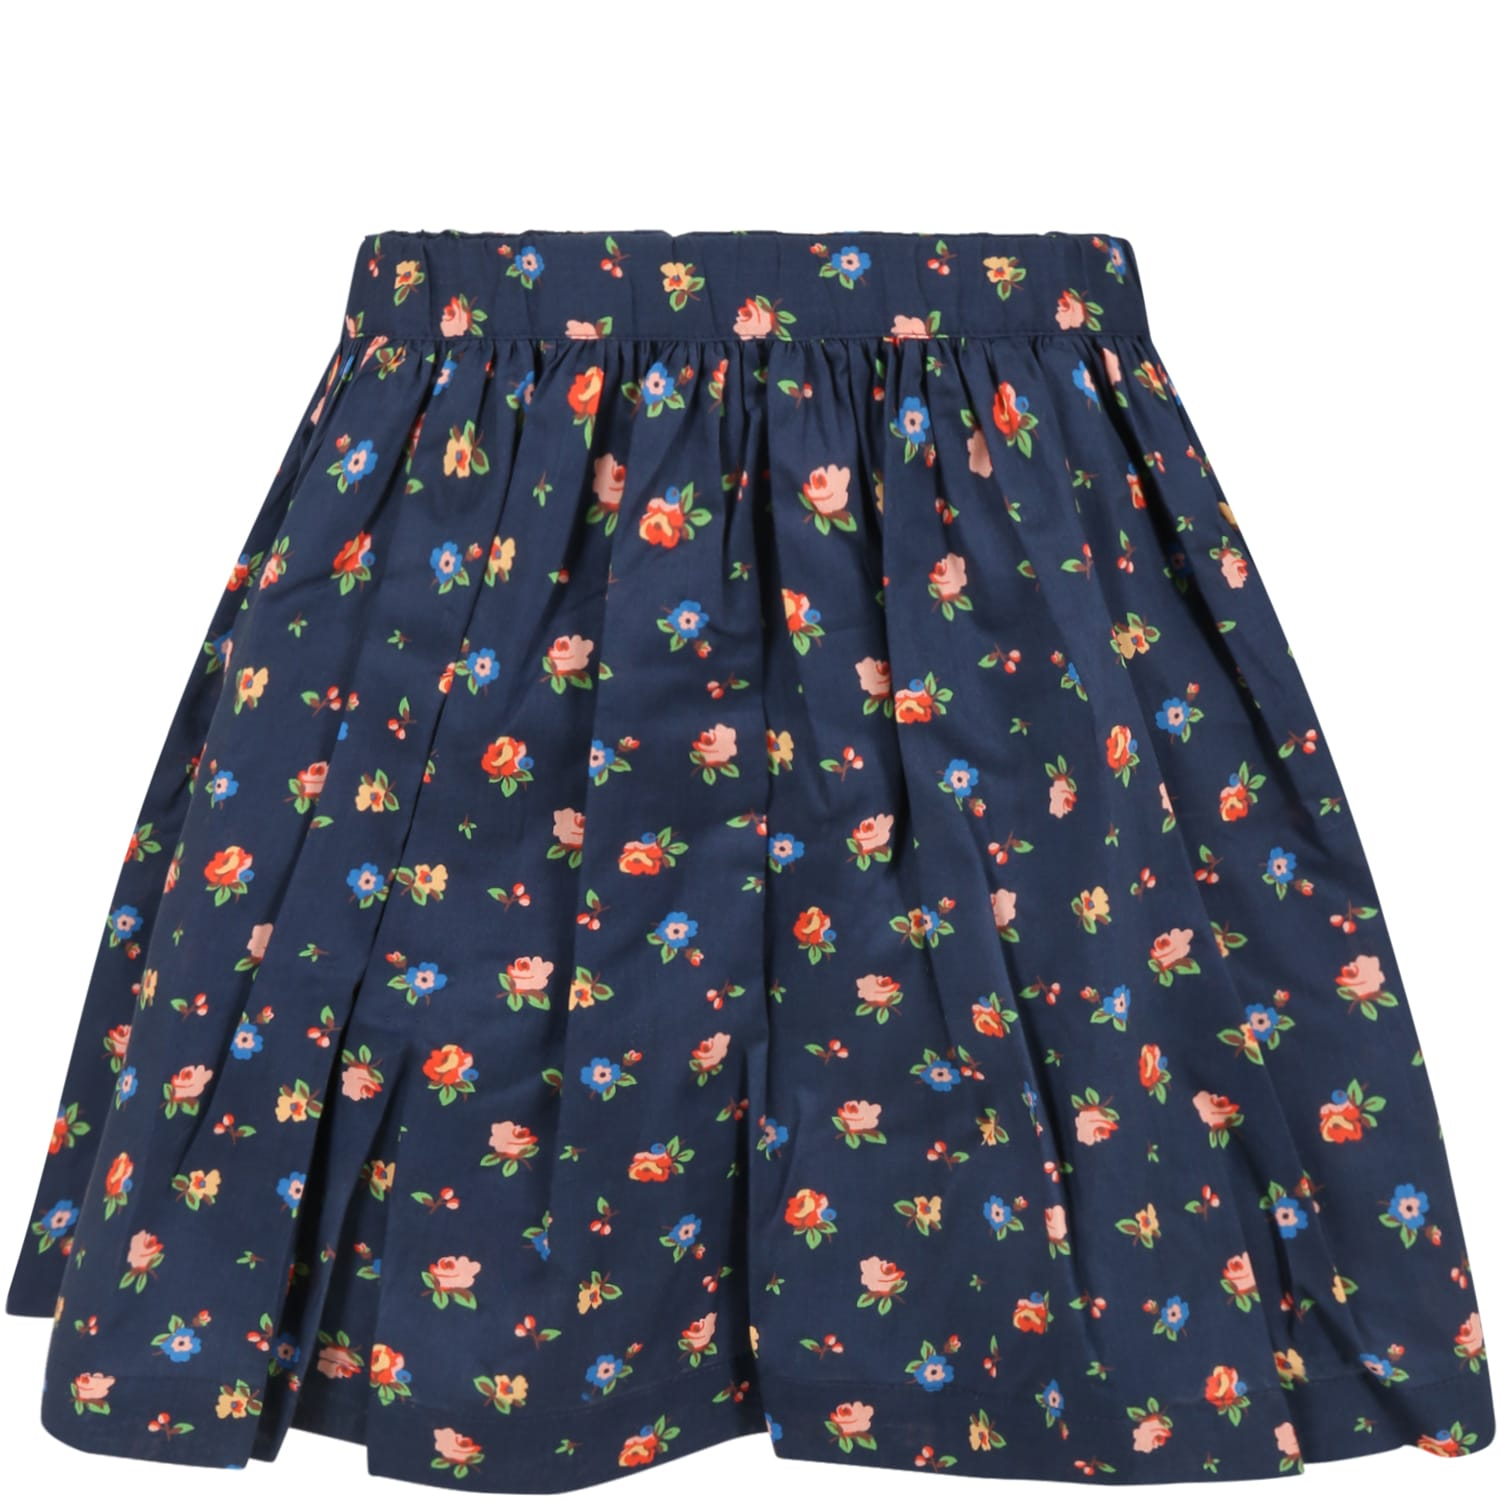 Blue Skirt For Girl With Flowers